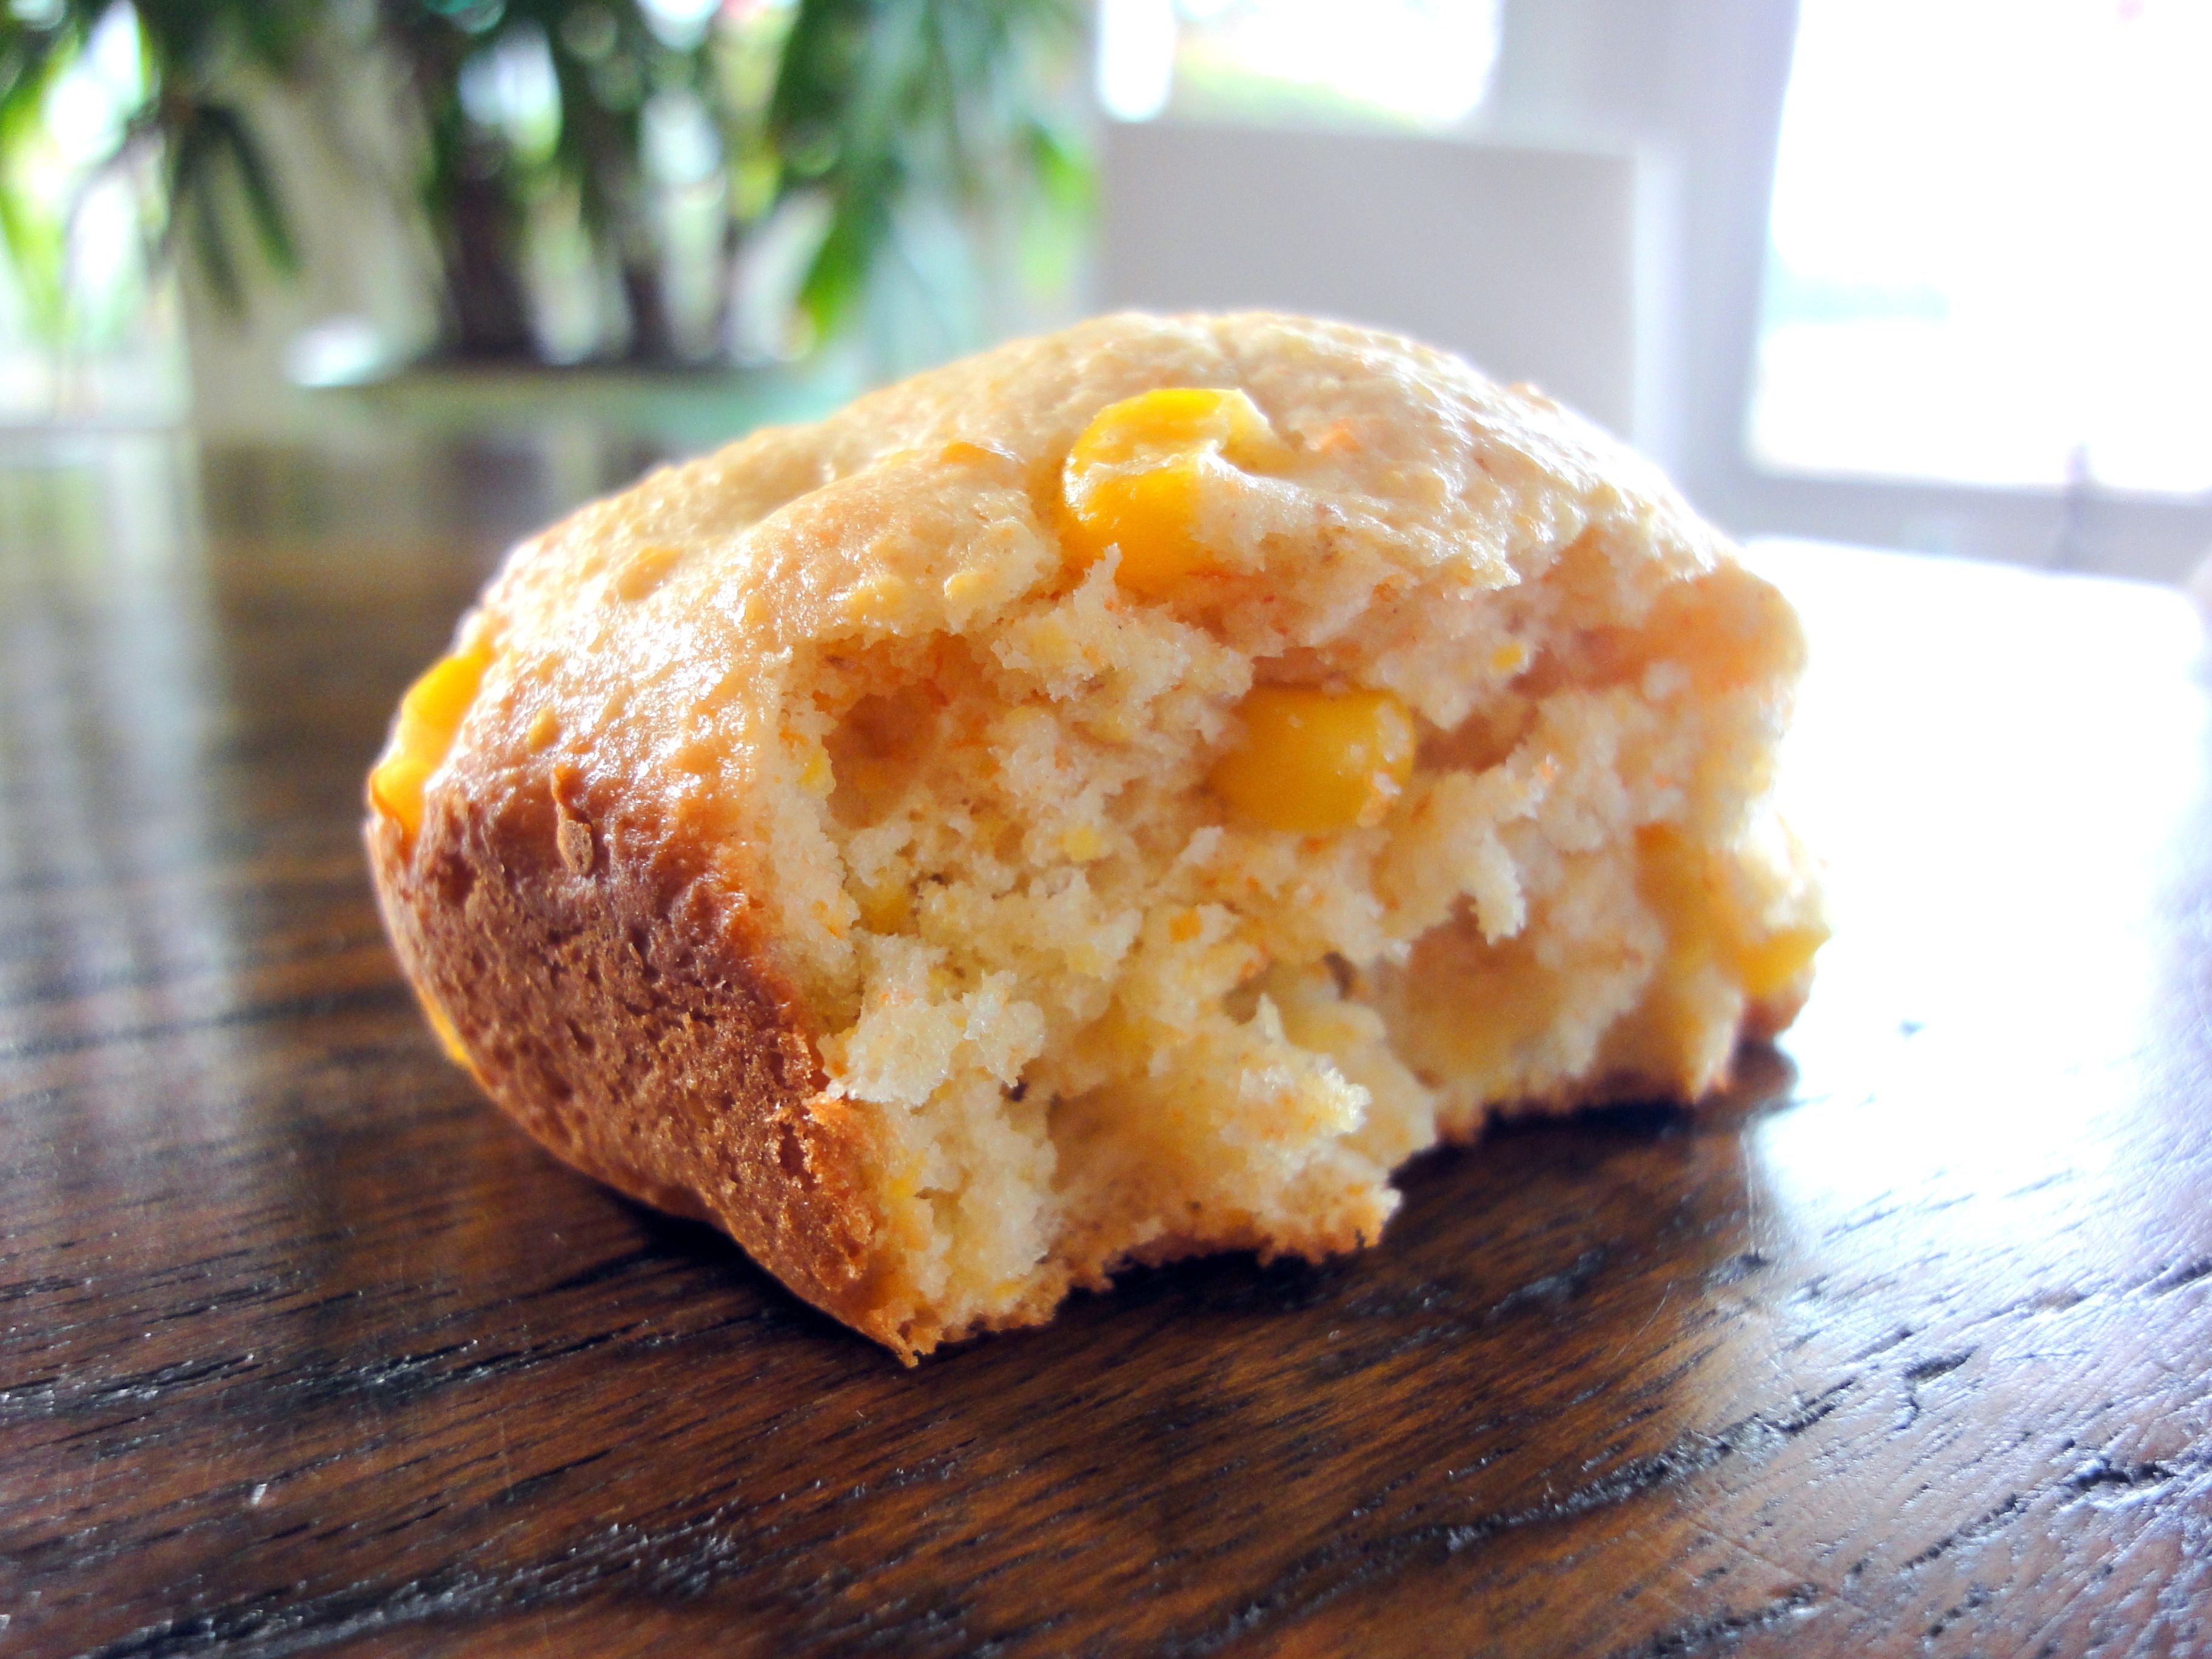 Delicious corn muffins with a tender crumb! The perfect comfort food.